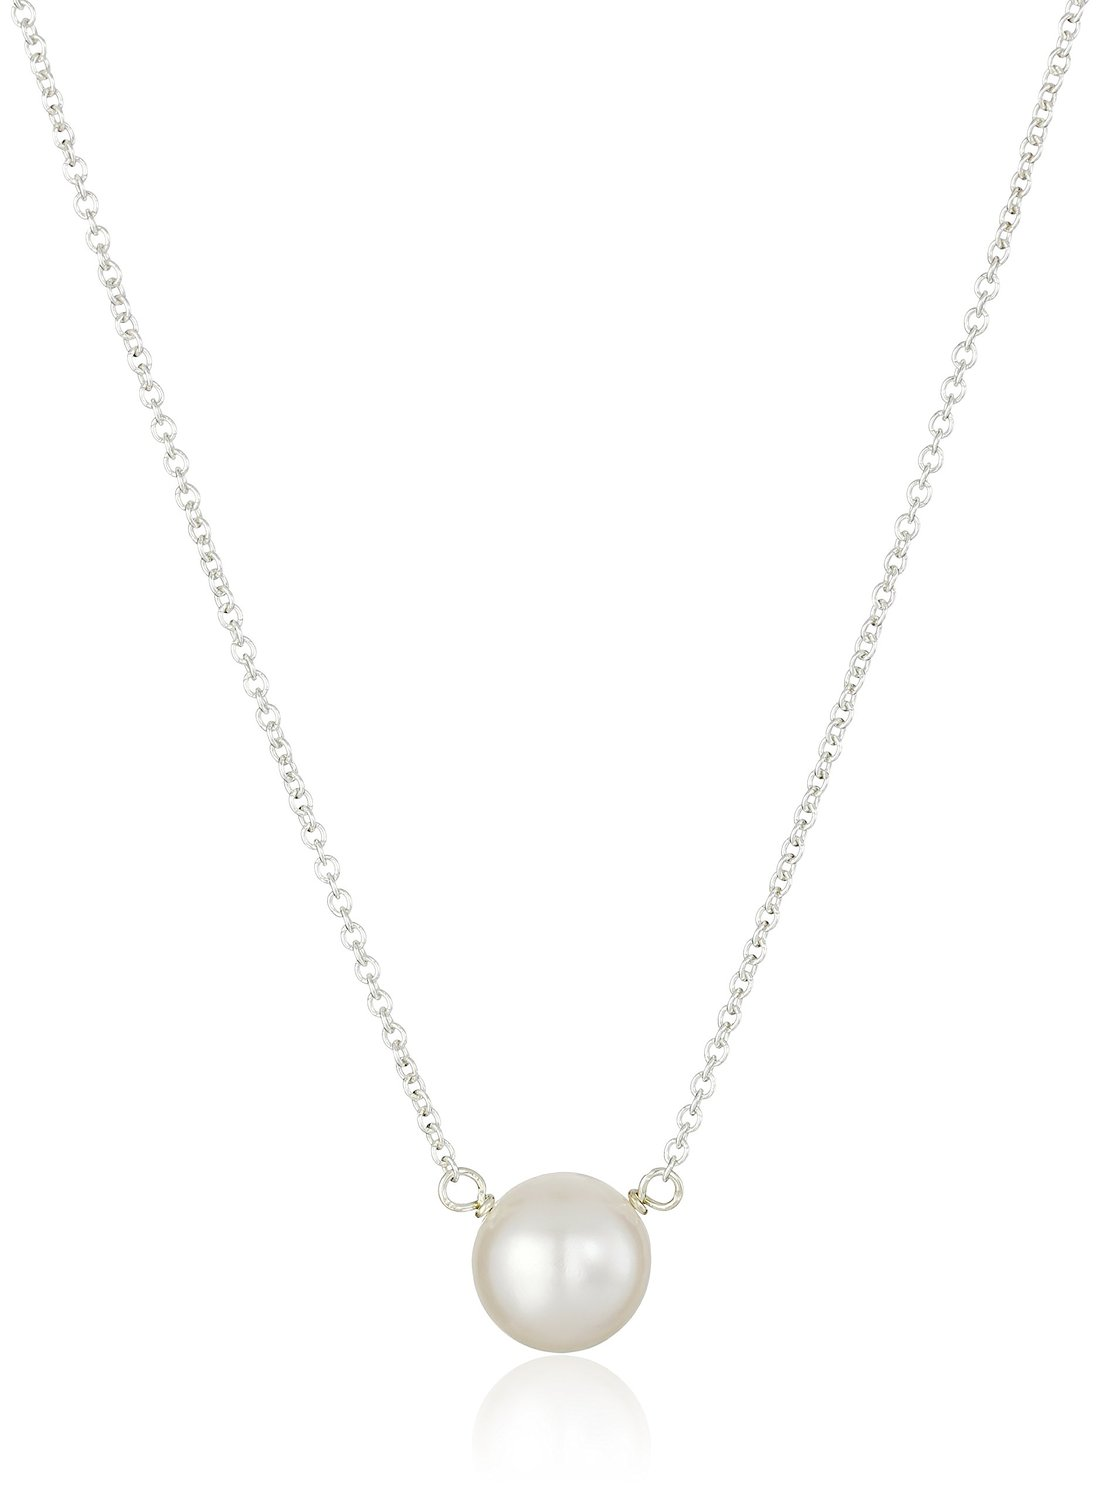 Dogeared Pearls of Wisdom Sterling Silver Freshwater Pearl Necklace - PS2022